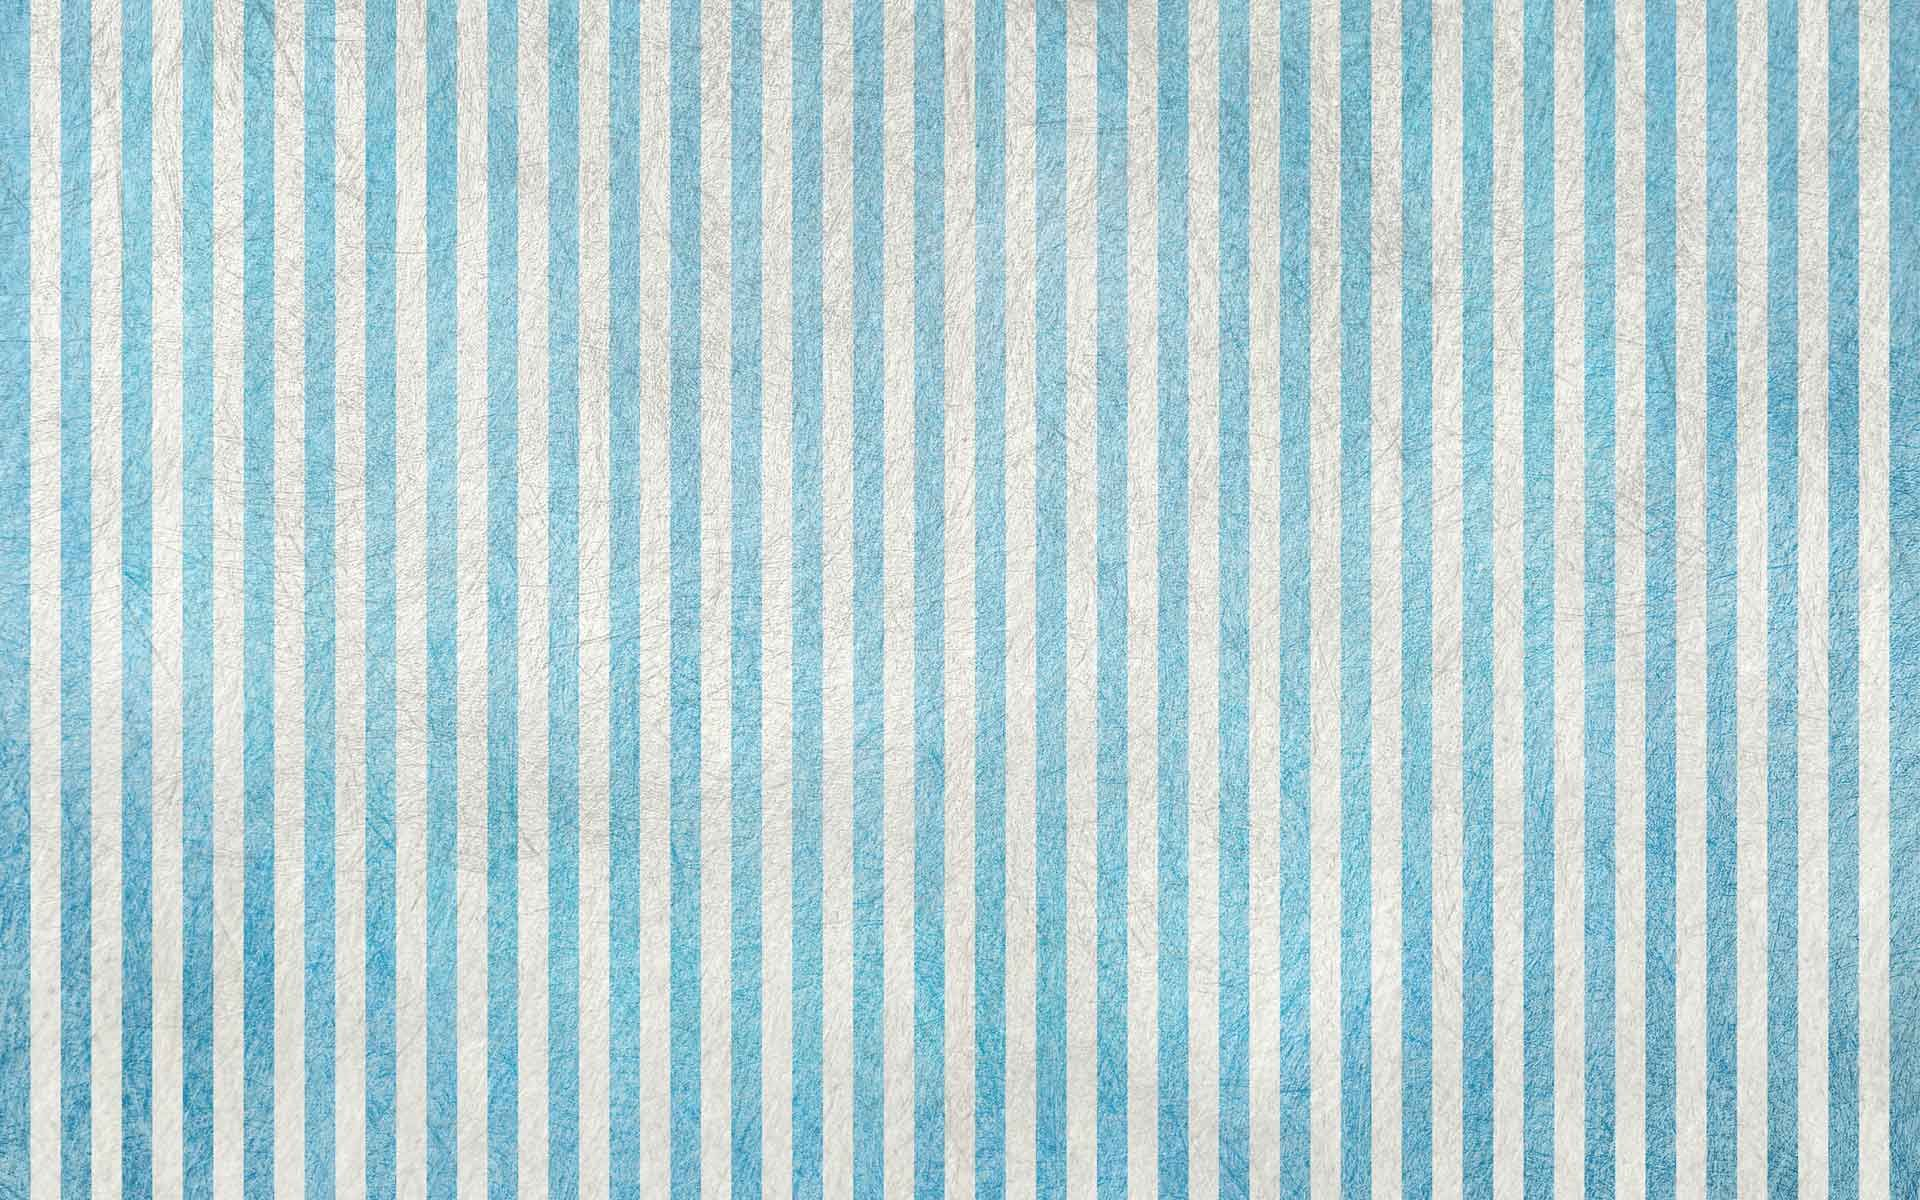 Blue And White Stripes wallpaper | Recursos | Pinterest ...